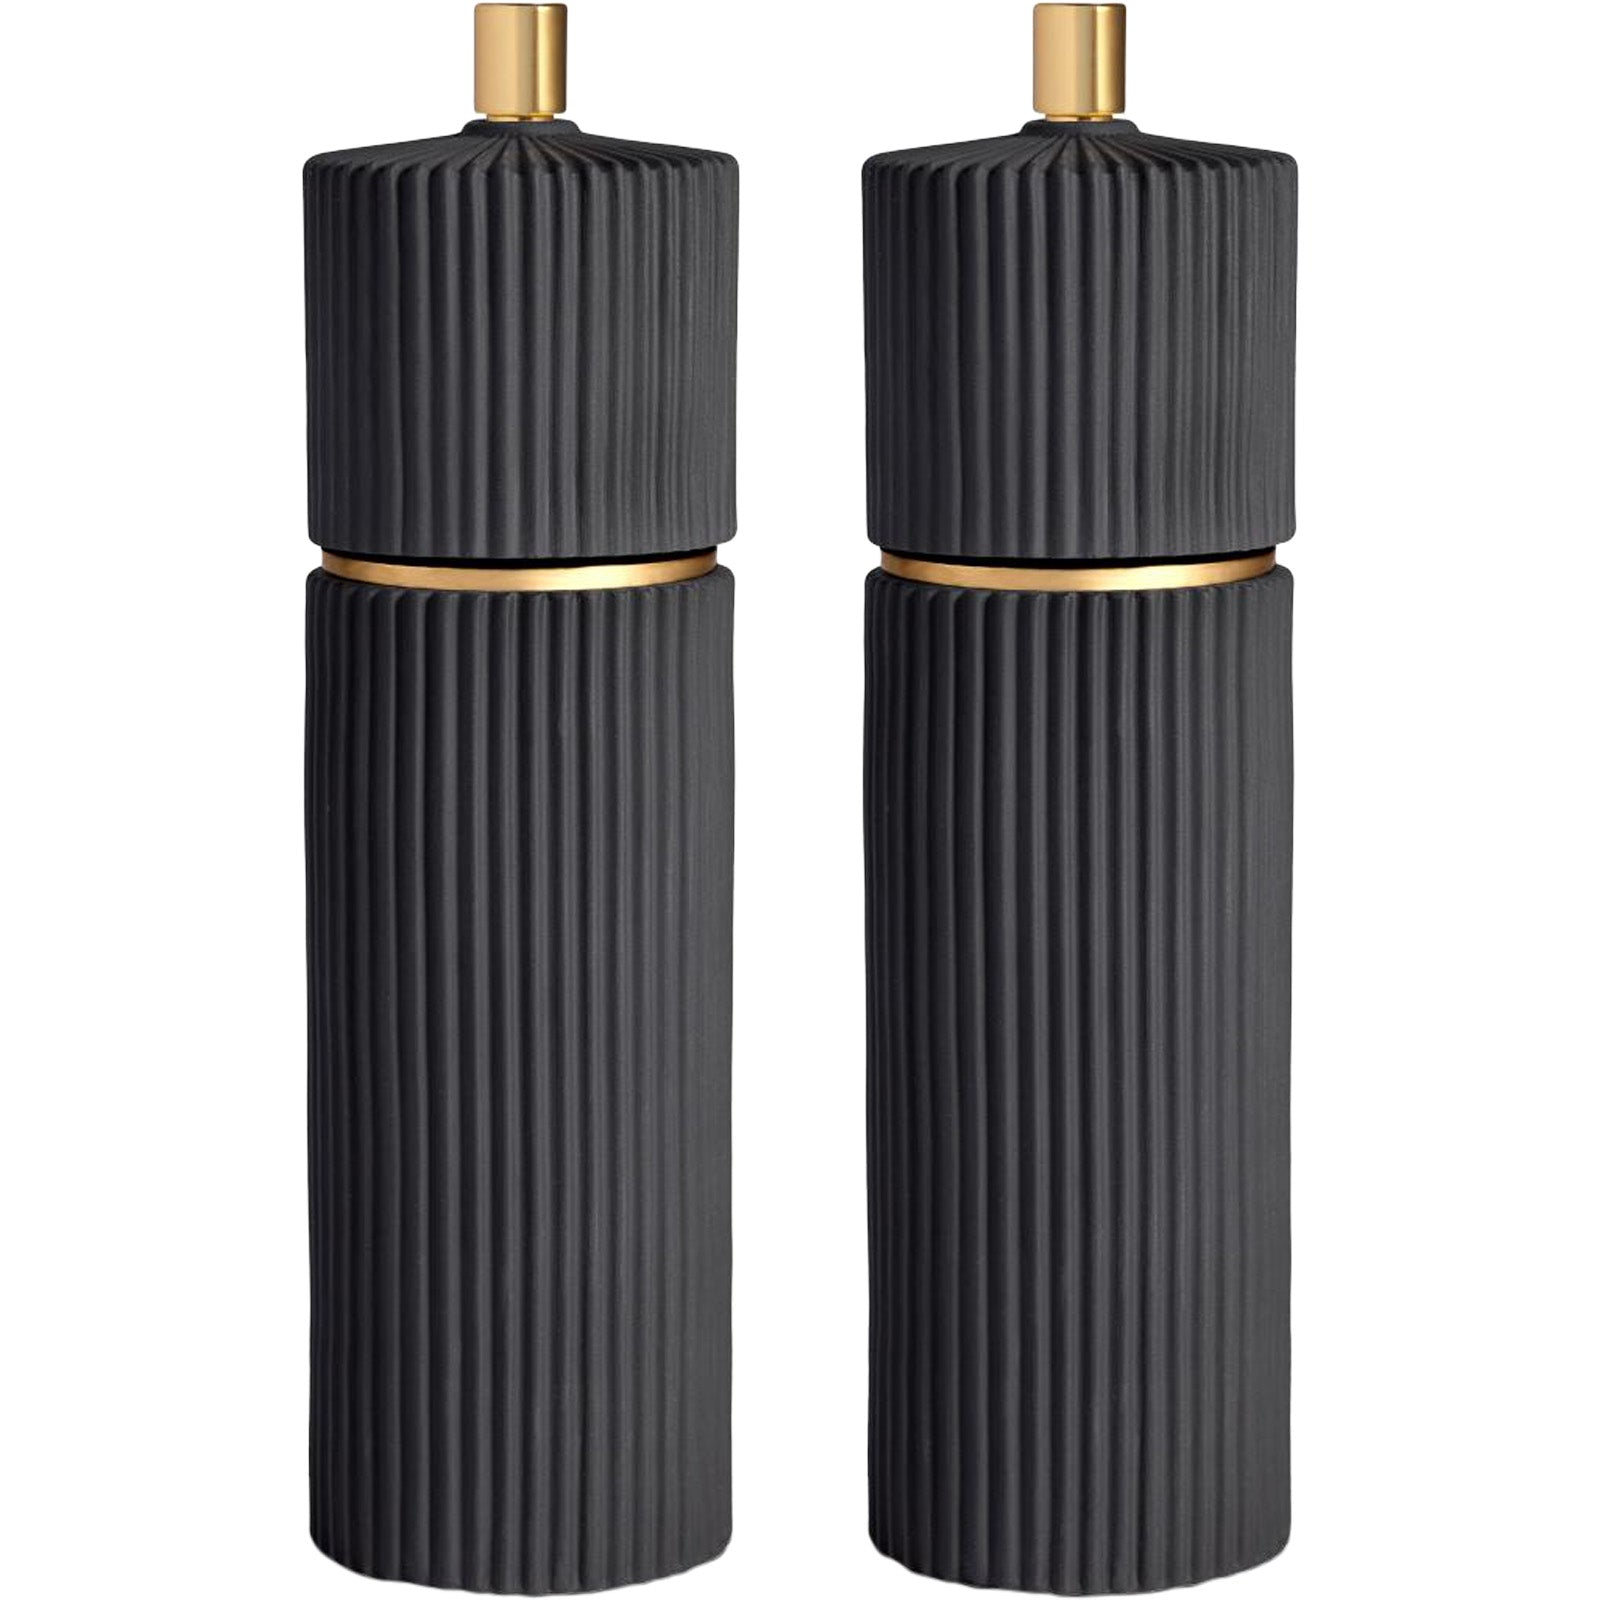 Black Ionic Salt & Pepper Mills